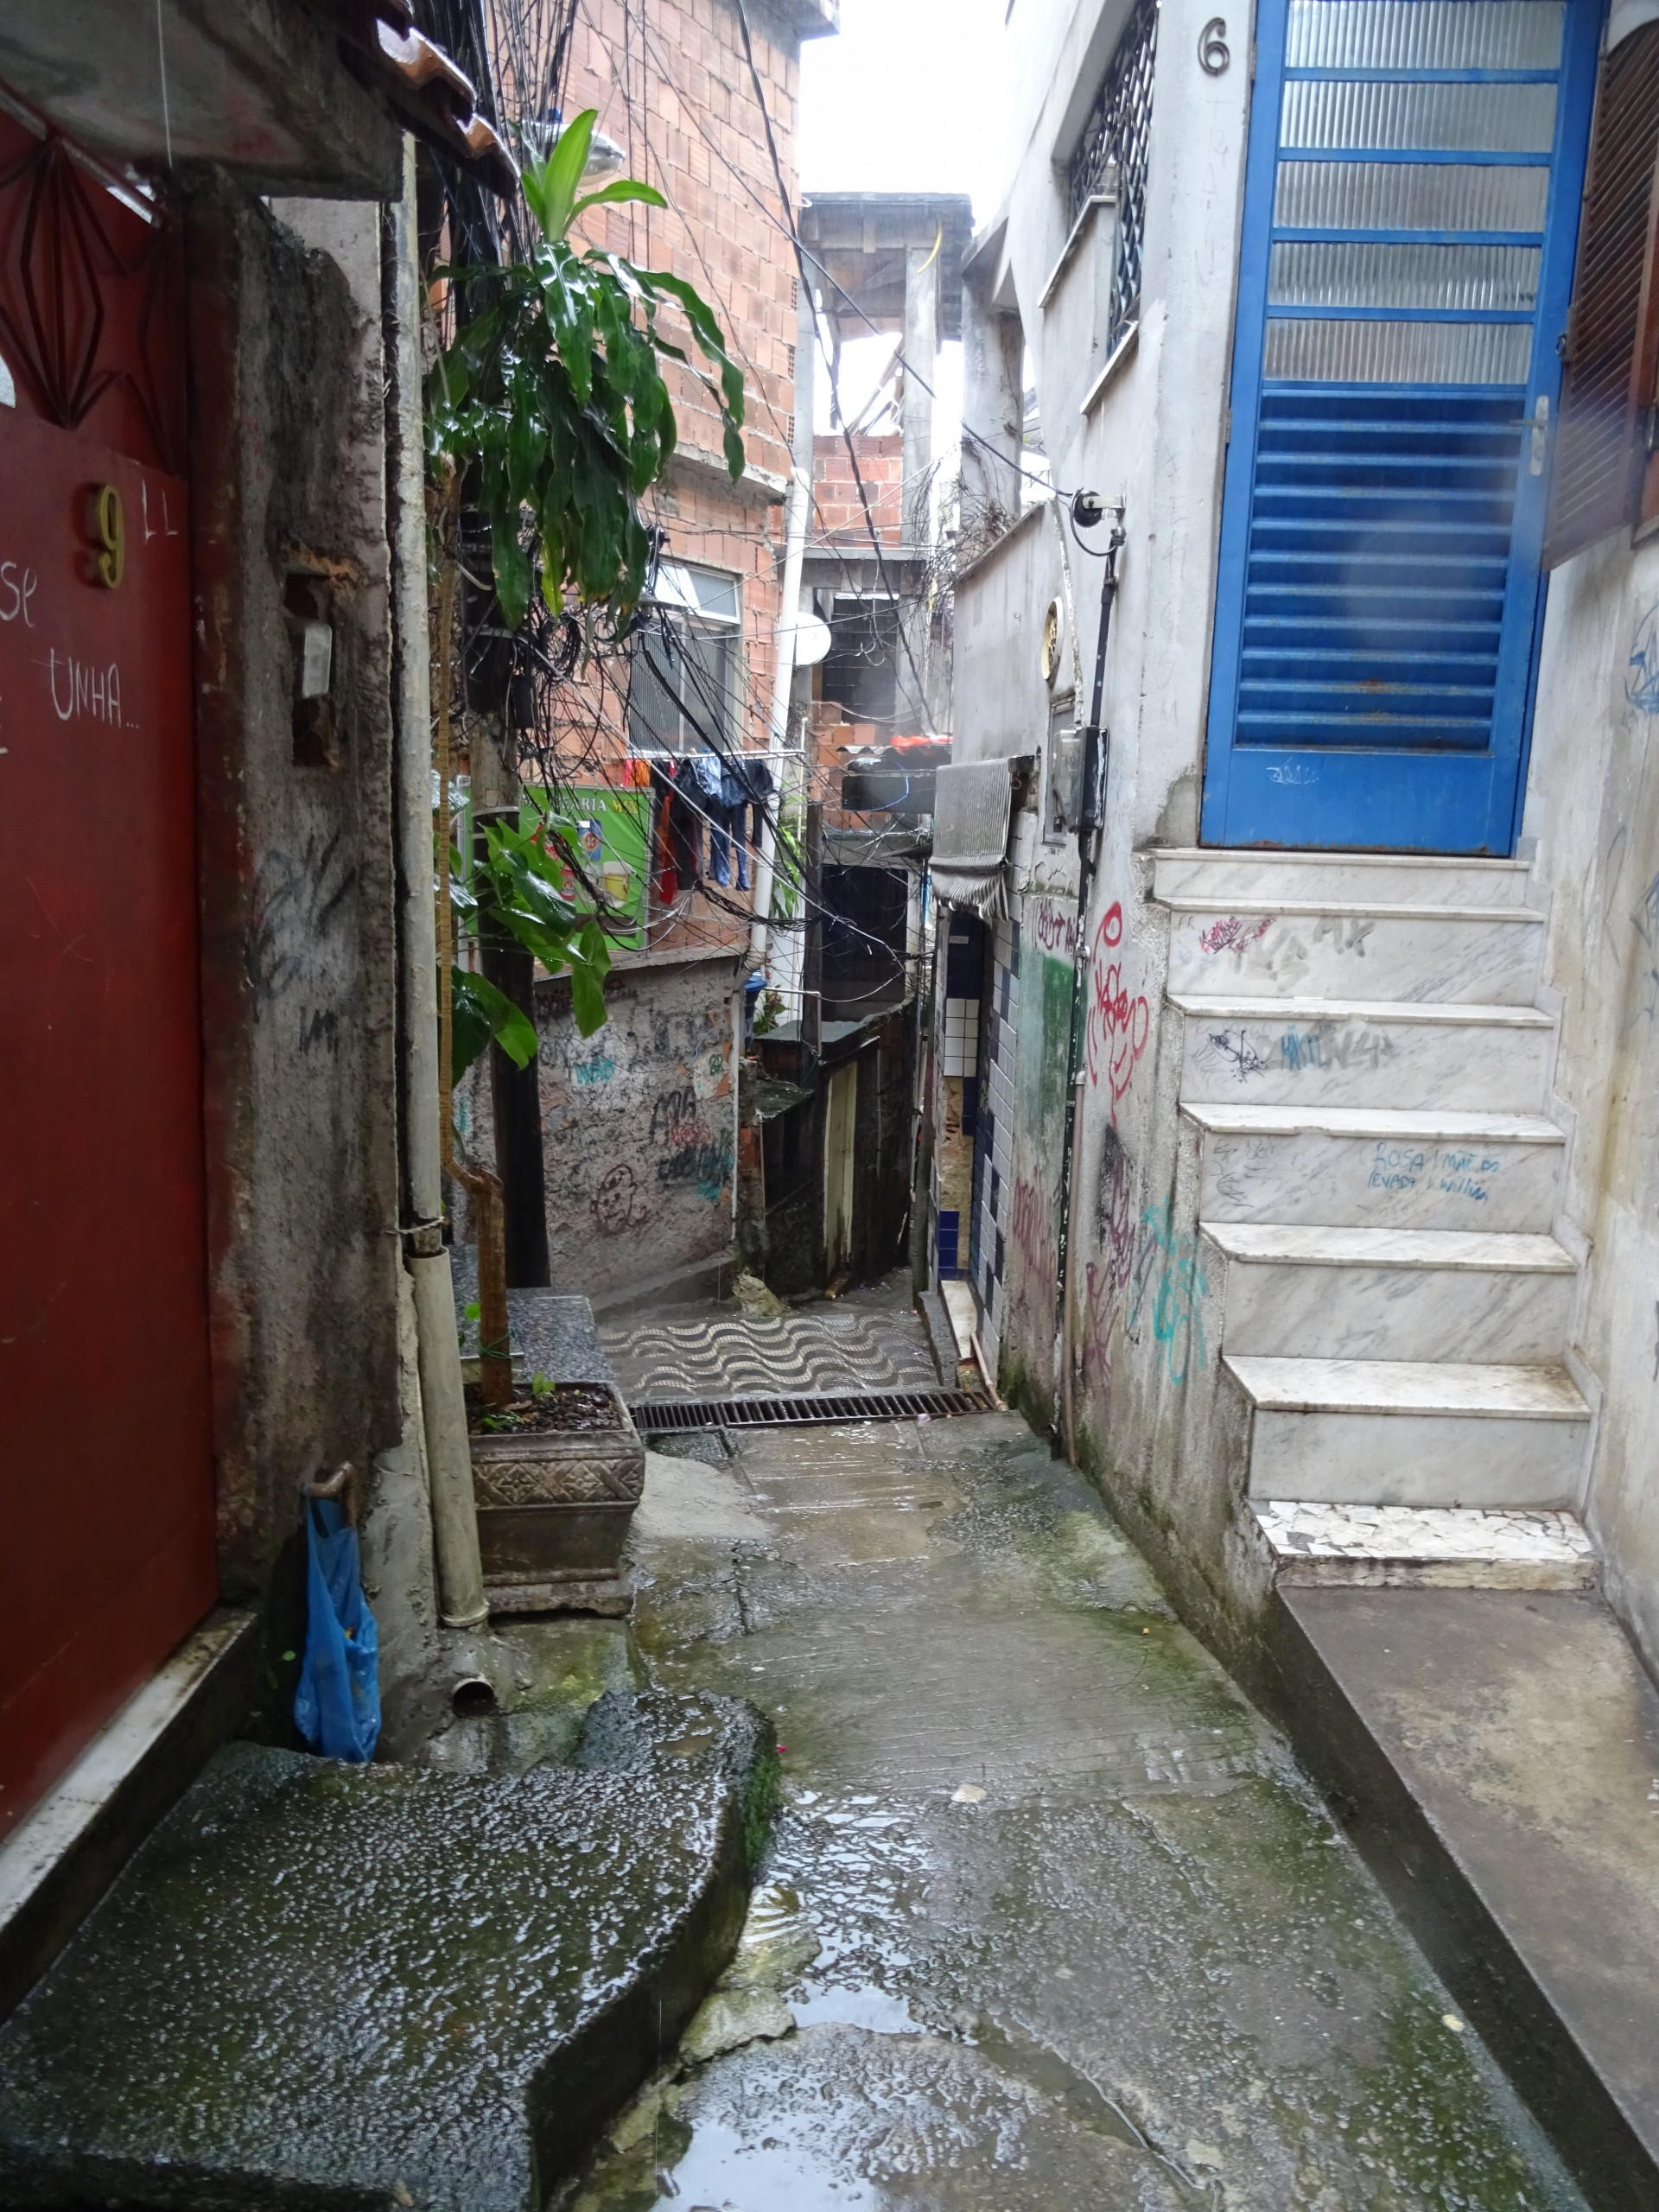 Narrow alleys abound. Umbrellas are hard to fit through.